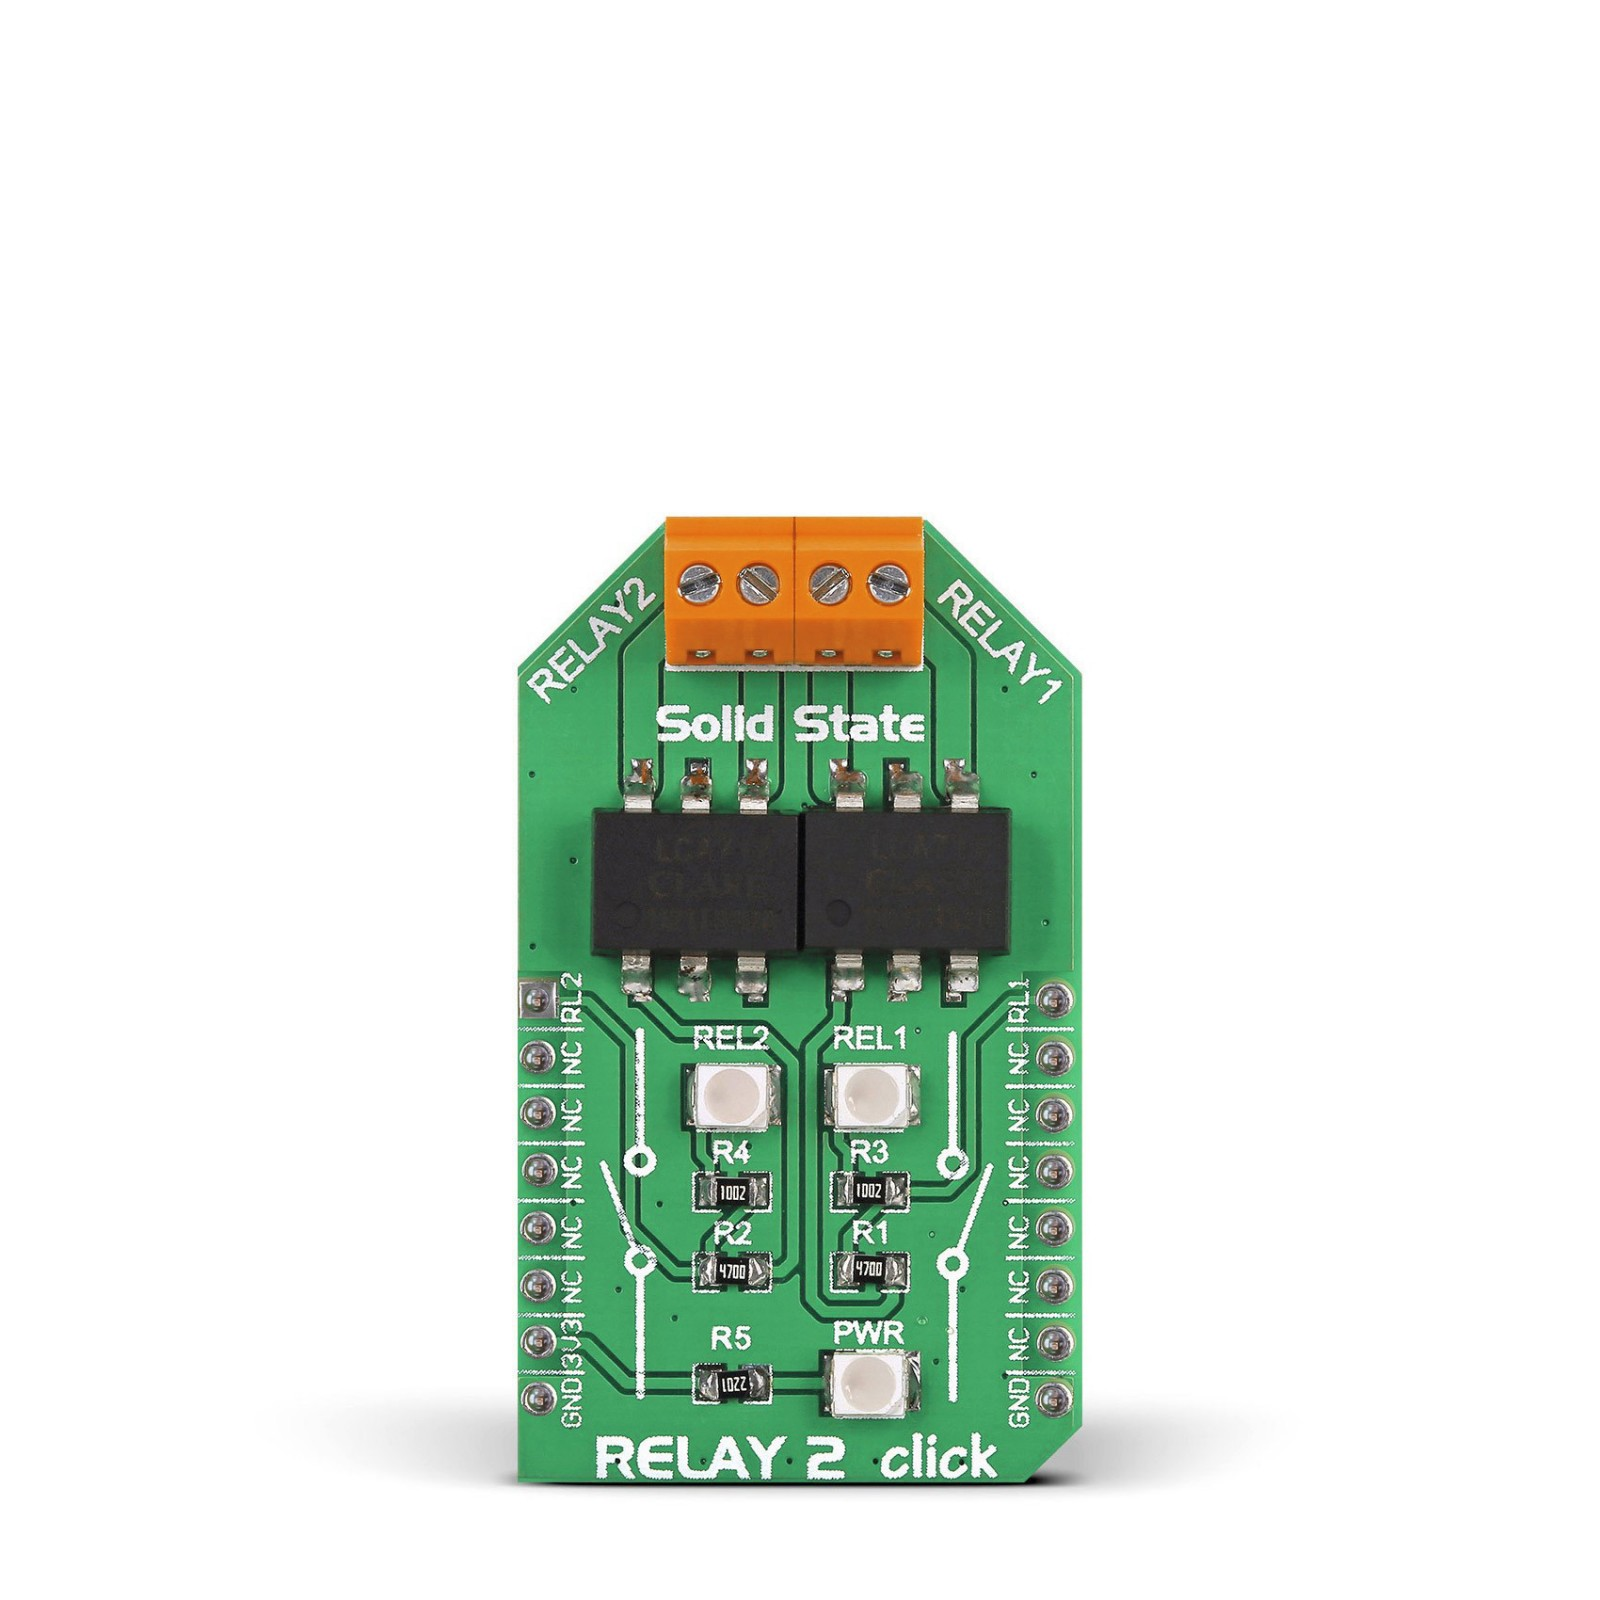 Relay 2 Click Board With Two Lca717 Optomos Solid State Relays Switching Speed Of A Mgctlbxnmzp Mgctlbxv5112 Mgctlbxlc Mgctlbxpprestashop